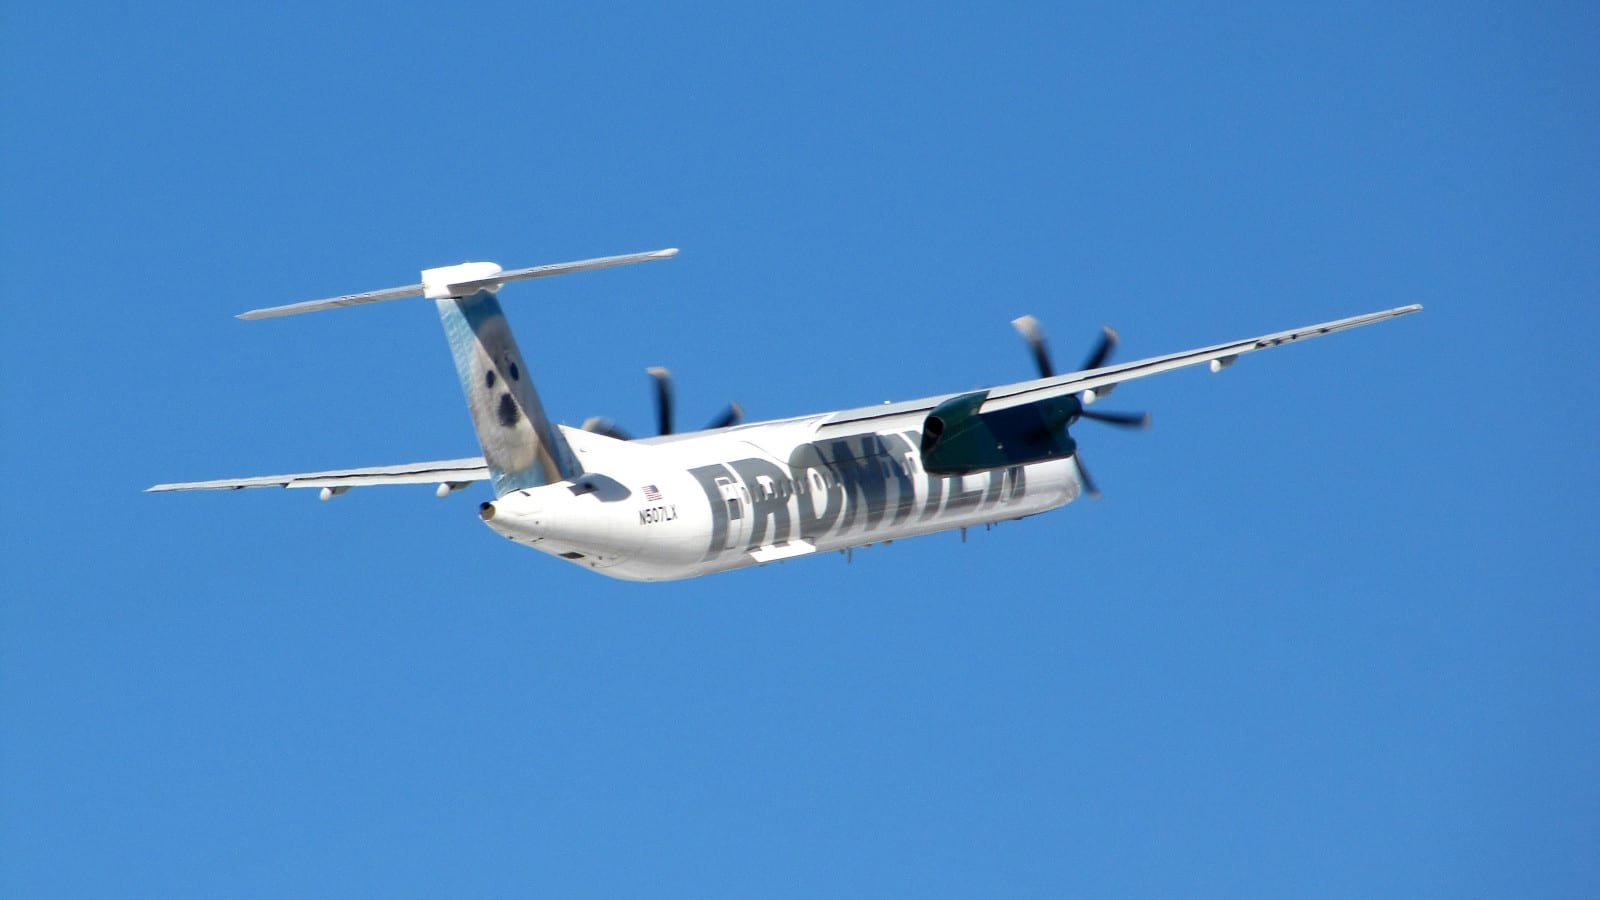 Aspen-Pitkin County Airport Republic Airlines Bombardier Dash 8 Q400